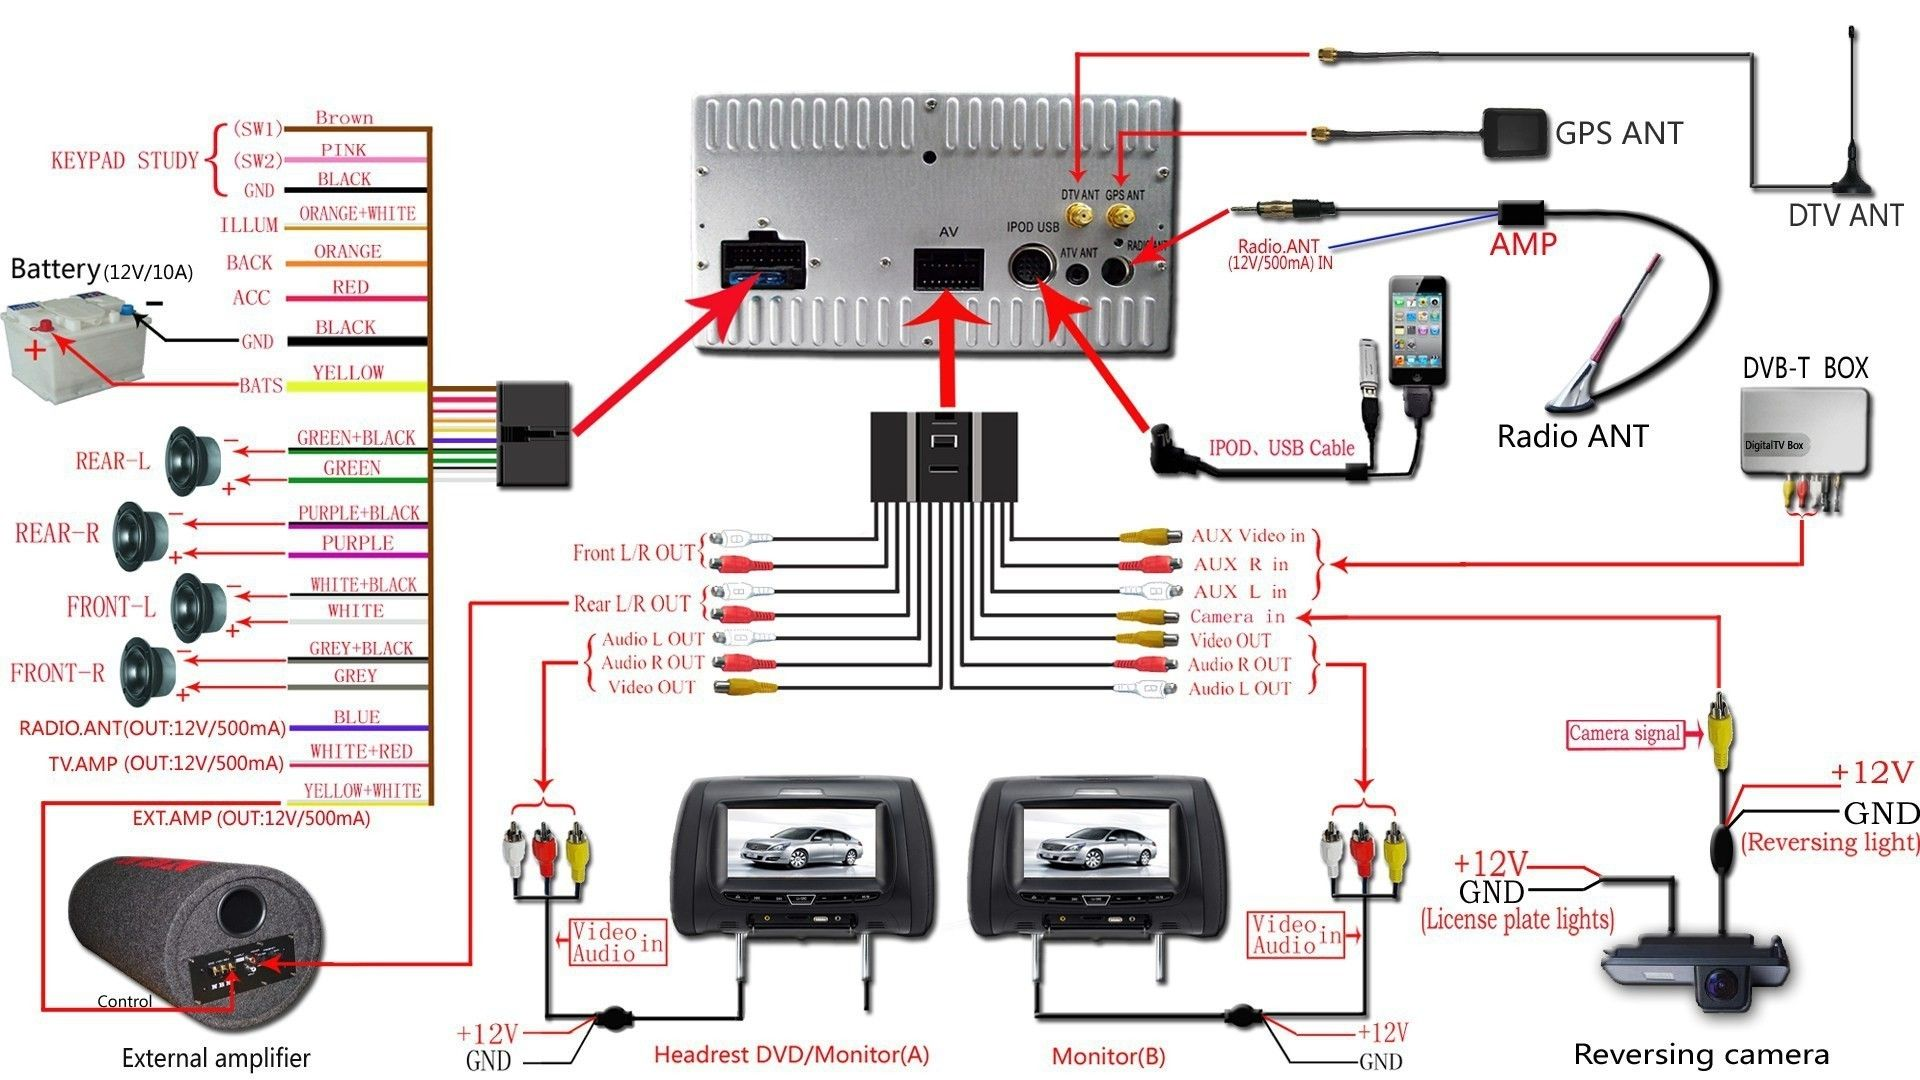 New Wiring Diagram For Dual Car Stereo Diagram Diagramtemplate Diagramsample Car Audio Audio Design Car Stereo Systems